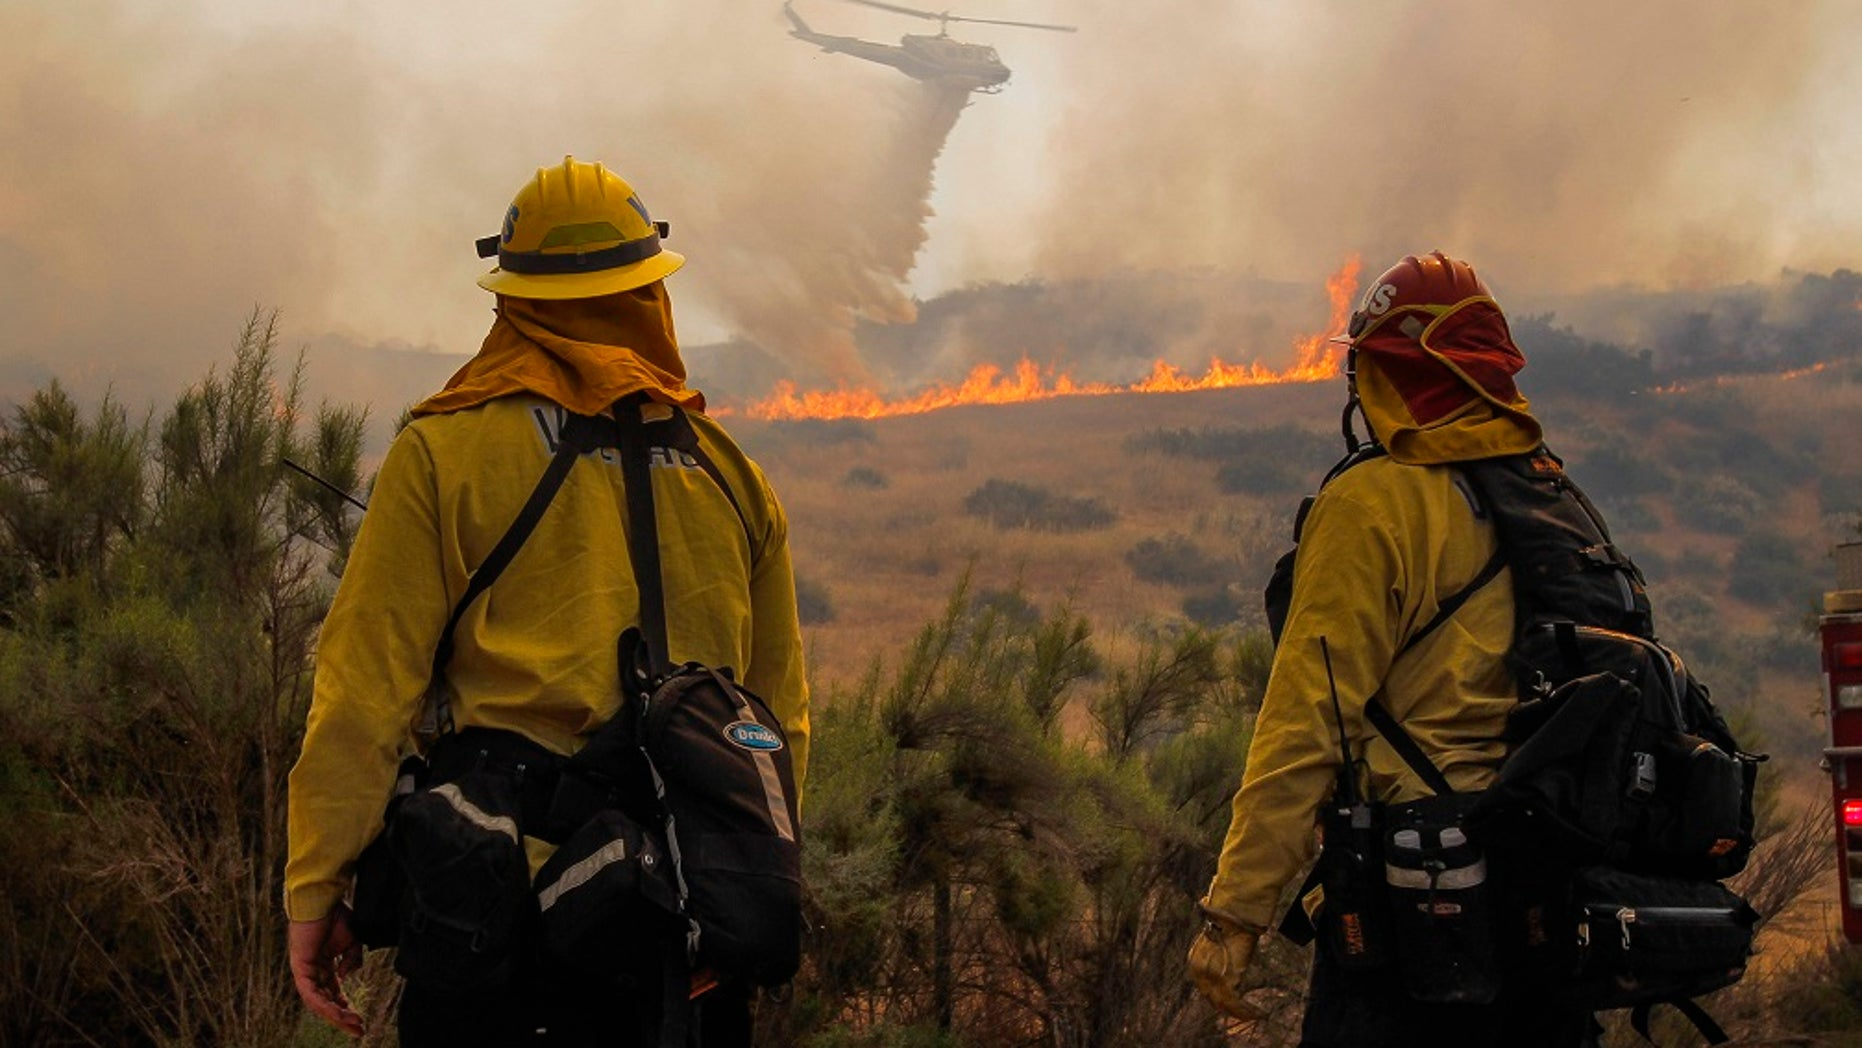 The fire broke out Saturday south of Jamul and burned more than 2 square miles. The wildfire forced hundreds of people to evacuate the Pio Pico RV Resort and Campground and nearby Dulzura.